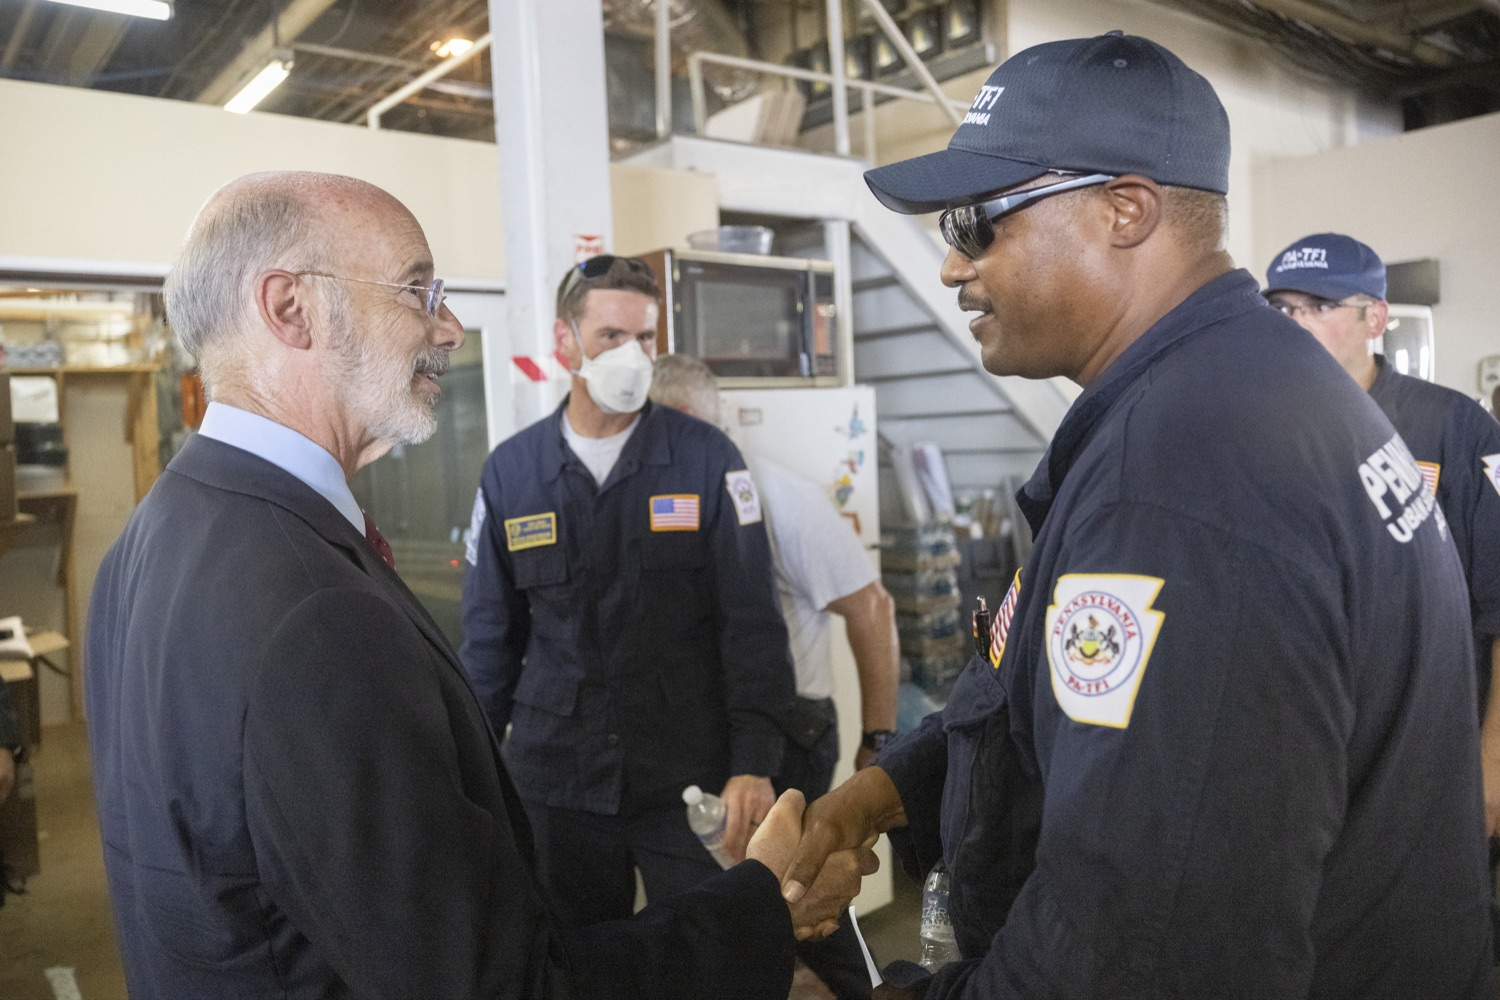 """<a href=""""https://filesource.wostreaming.net/commonwealthofpa/photo/18936_gov_taskforceone_dz_015.jpg"""" target=""""_blank"""">⇣Download Photo<br></a>Governor Tom Wolf speaking to returning Pennsylvania-Task Force 1. Members.Governor Tom Wolf thanked members of Pennsylvania-Task Force 1 (PA- TF1), who returned today to Philadelphia after spending two weeks assisting with search and rescue efforts at the site of the recent deadly building collapse in Surfside, Florida.  Philadelphia, Pa.  July 16, 2021"""